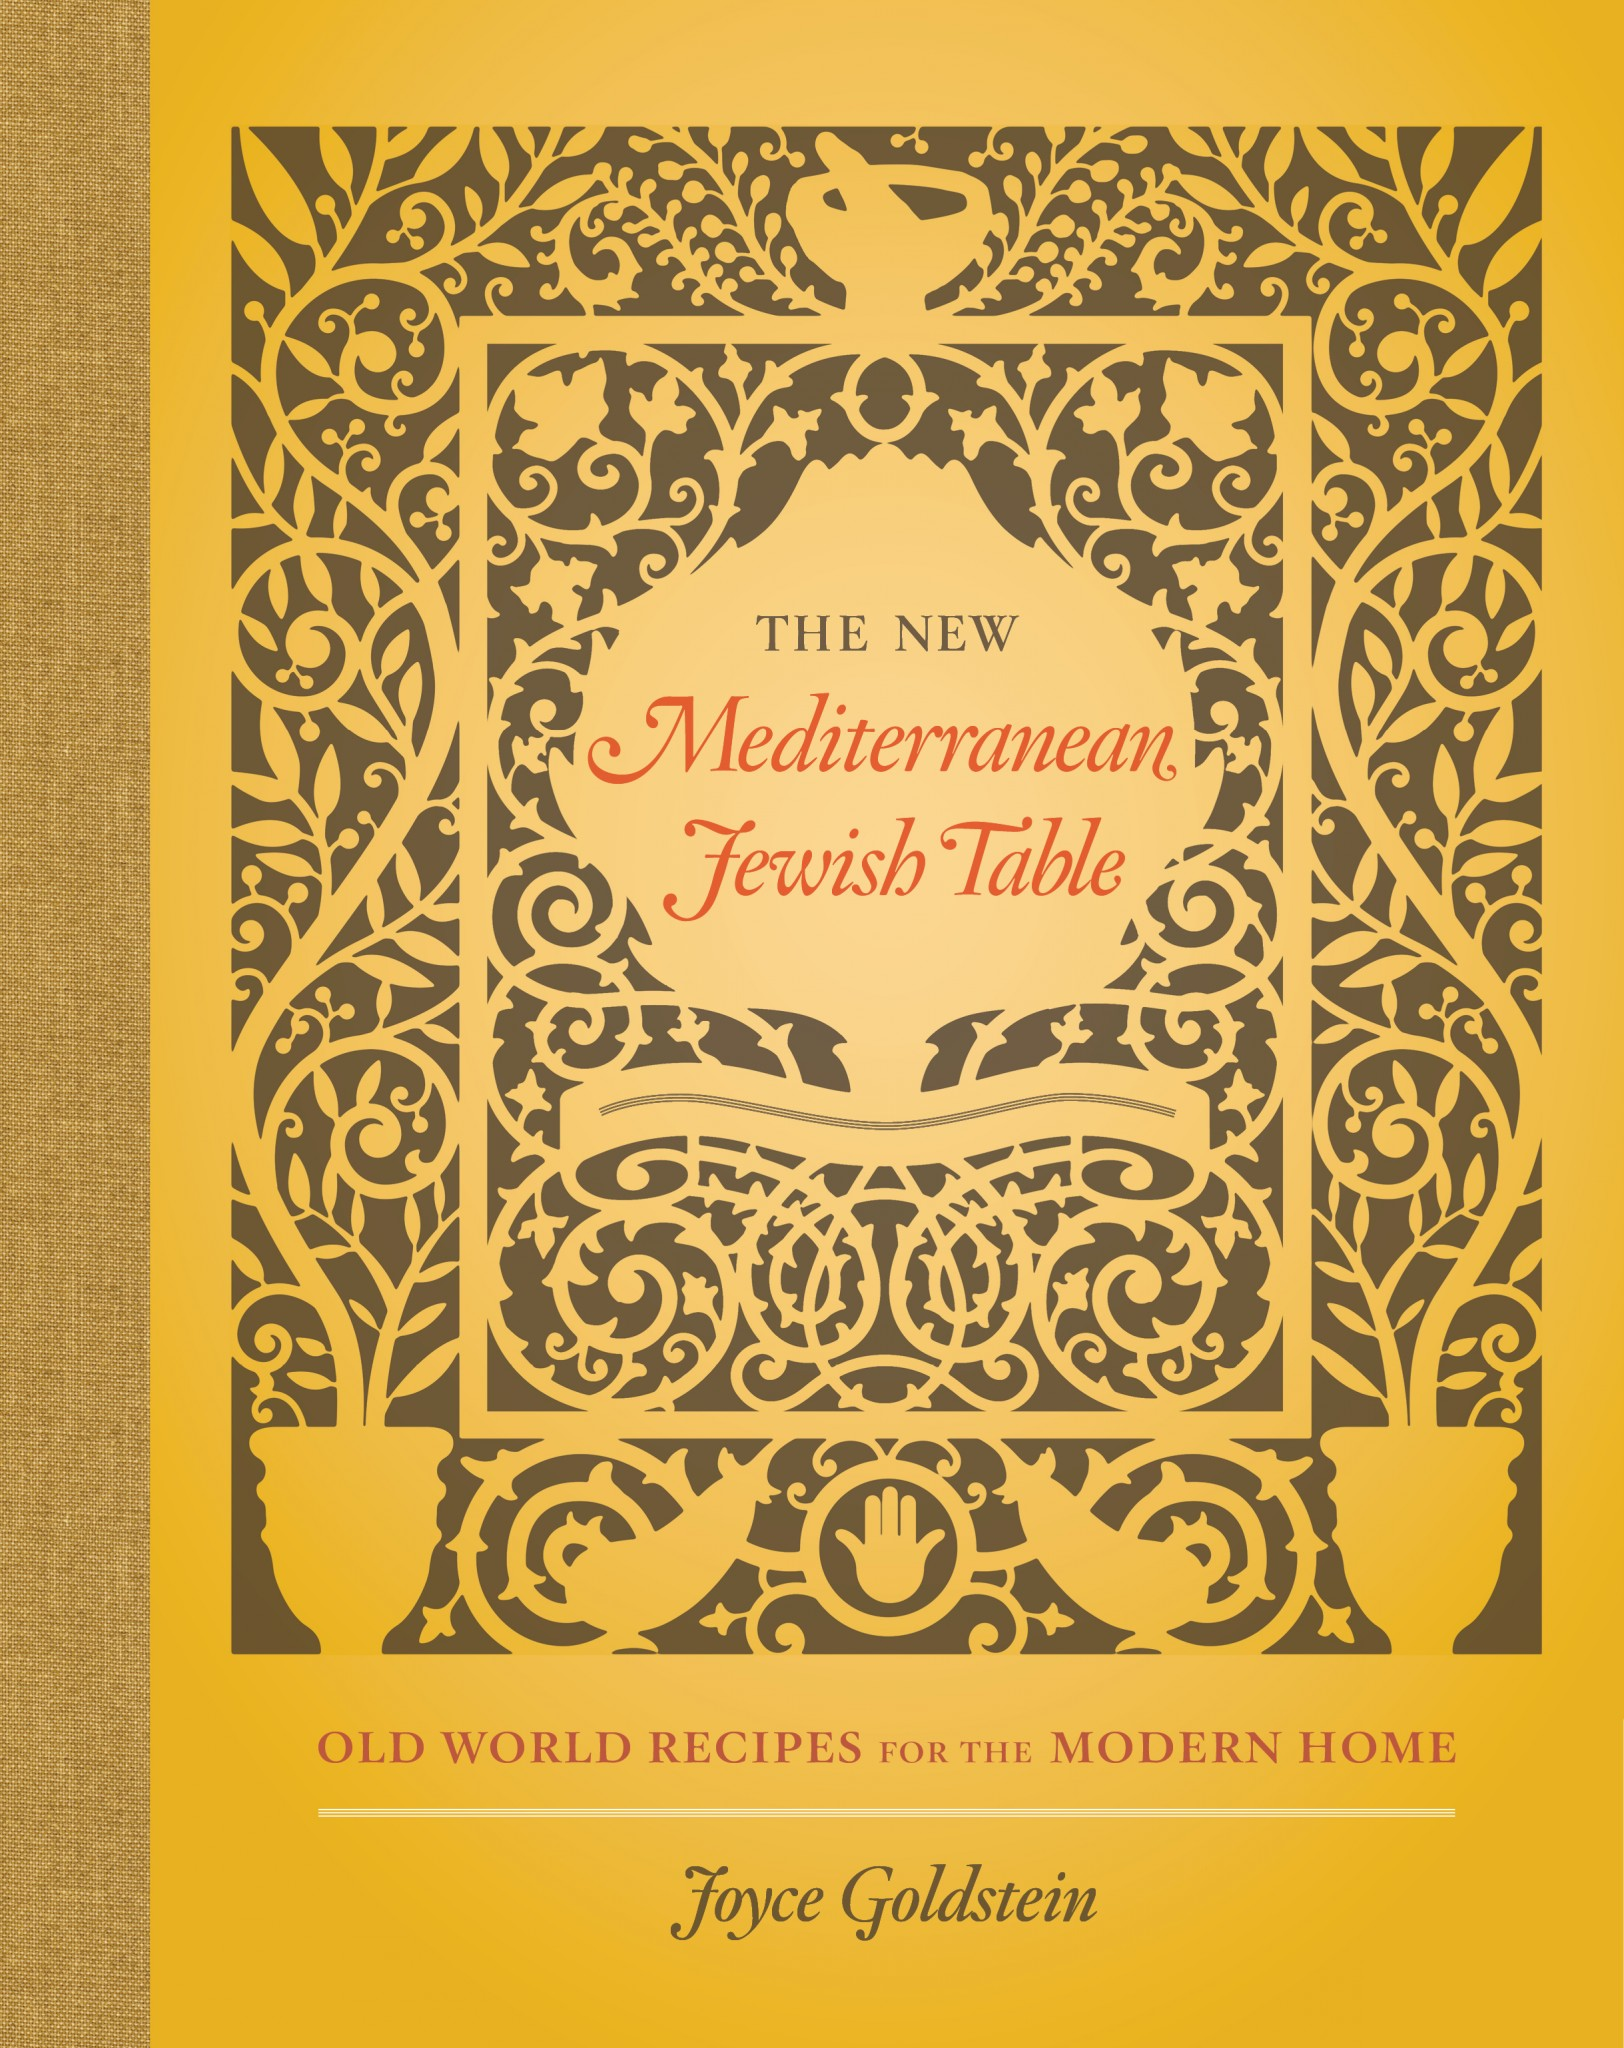 Joyce Goldstein - The New Mediterranean Jewish Table